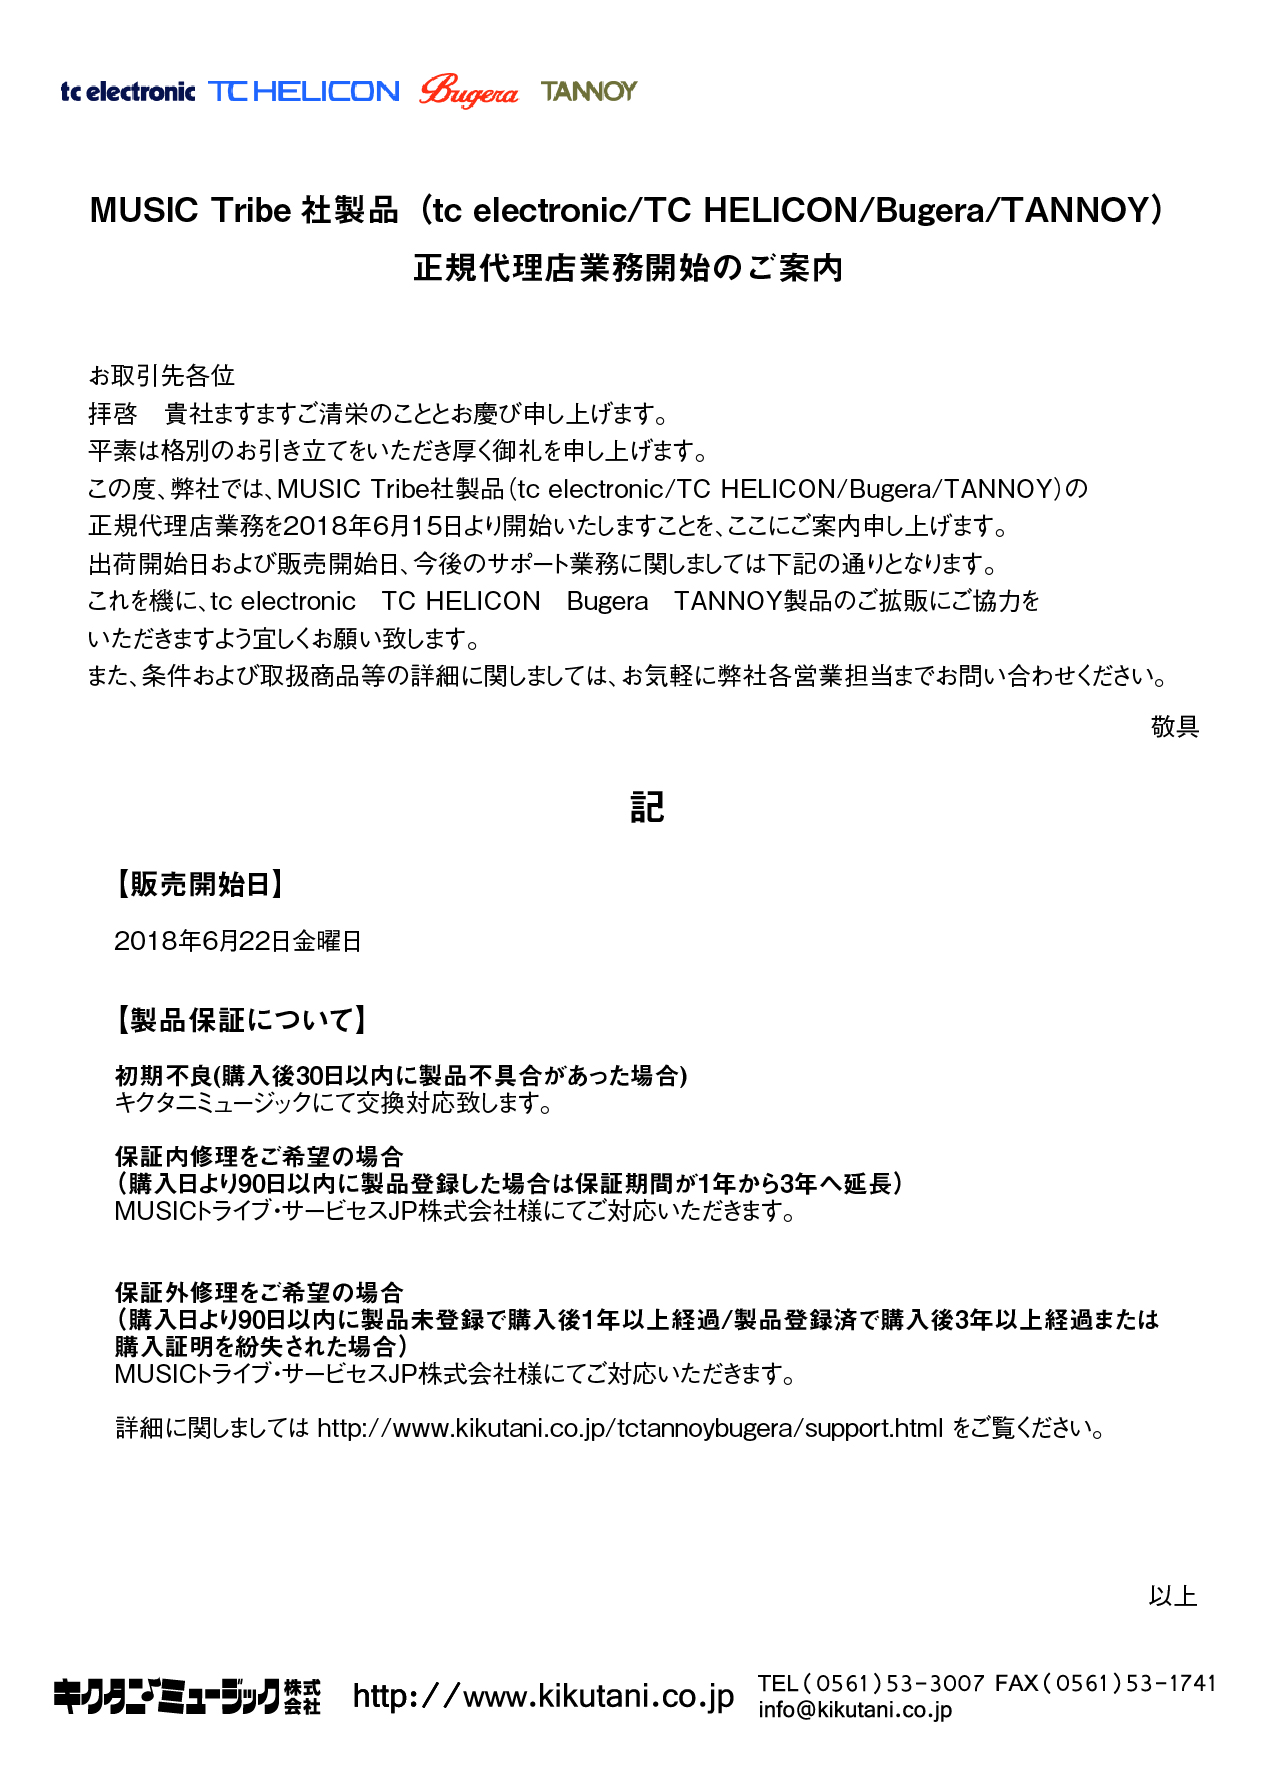 tcelectronic社TCHELICON社Bugera社Tannnoy社製品正規輸入代理店業務開始のご案内-01